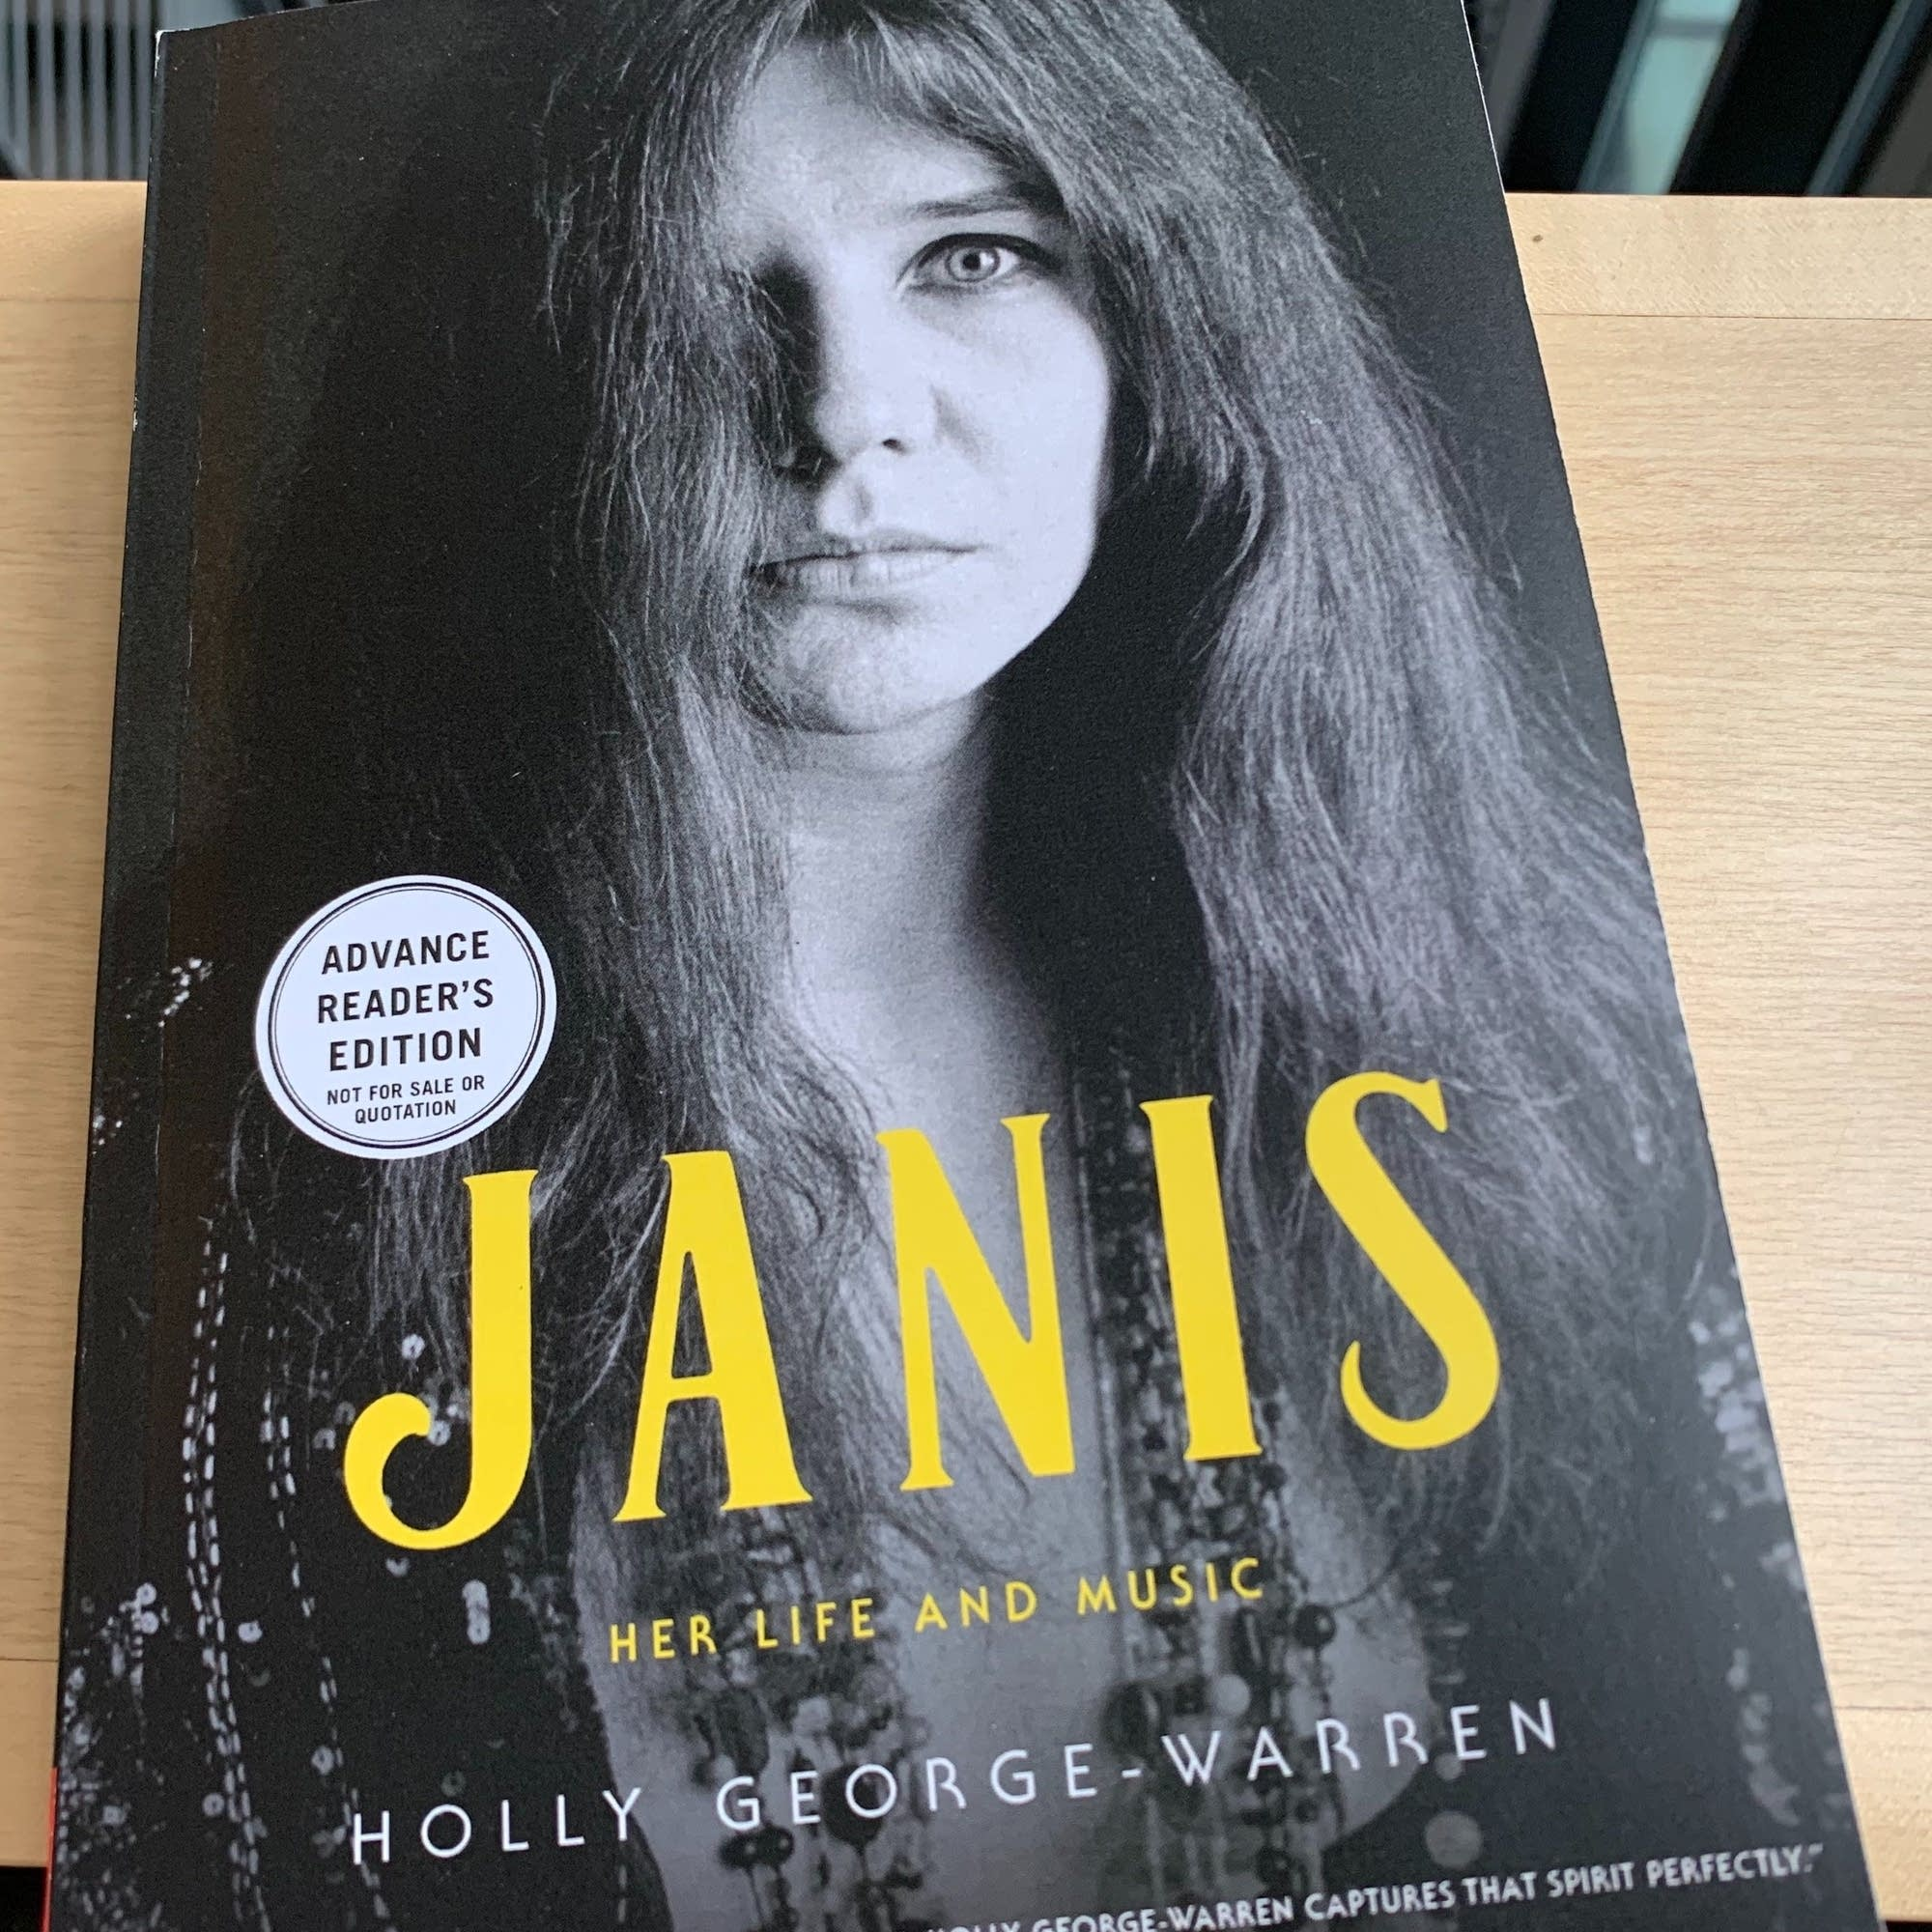 'Janis: Her Life and Music,' by Holly George-Warren.